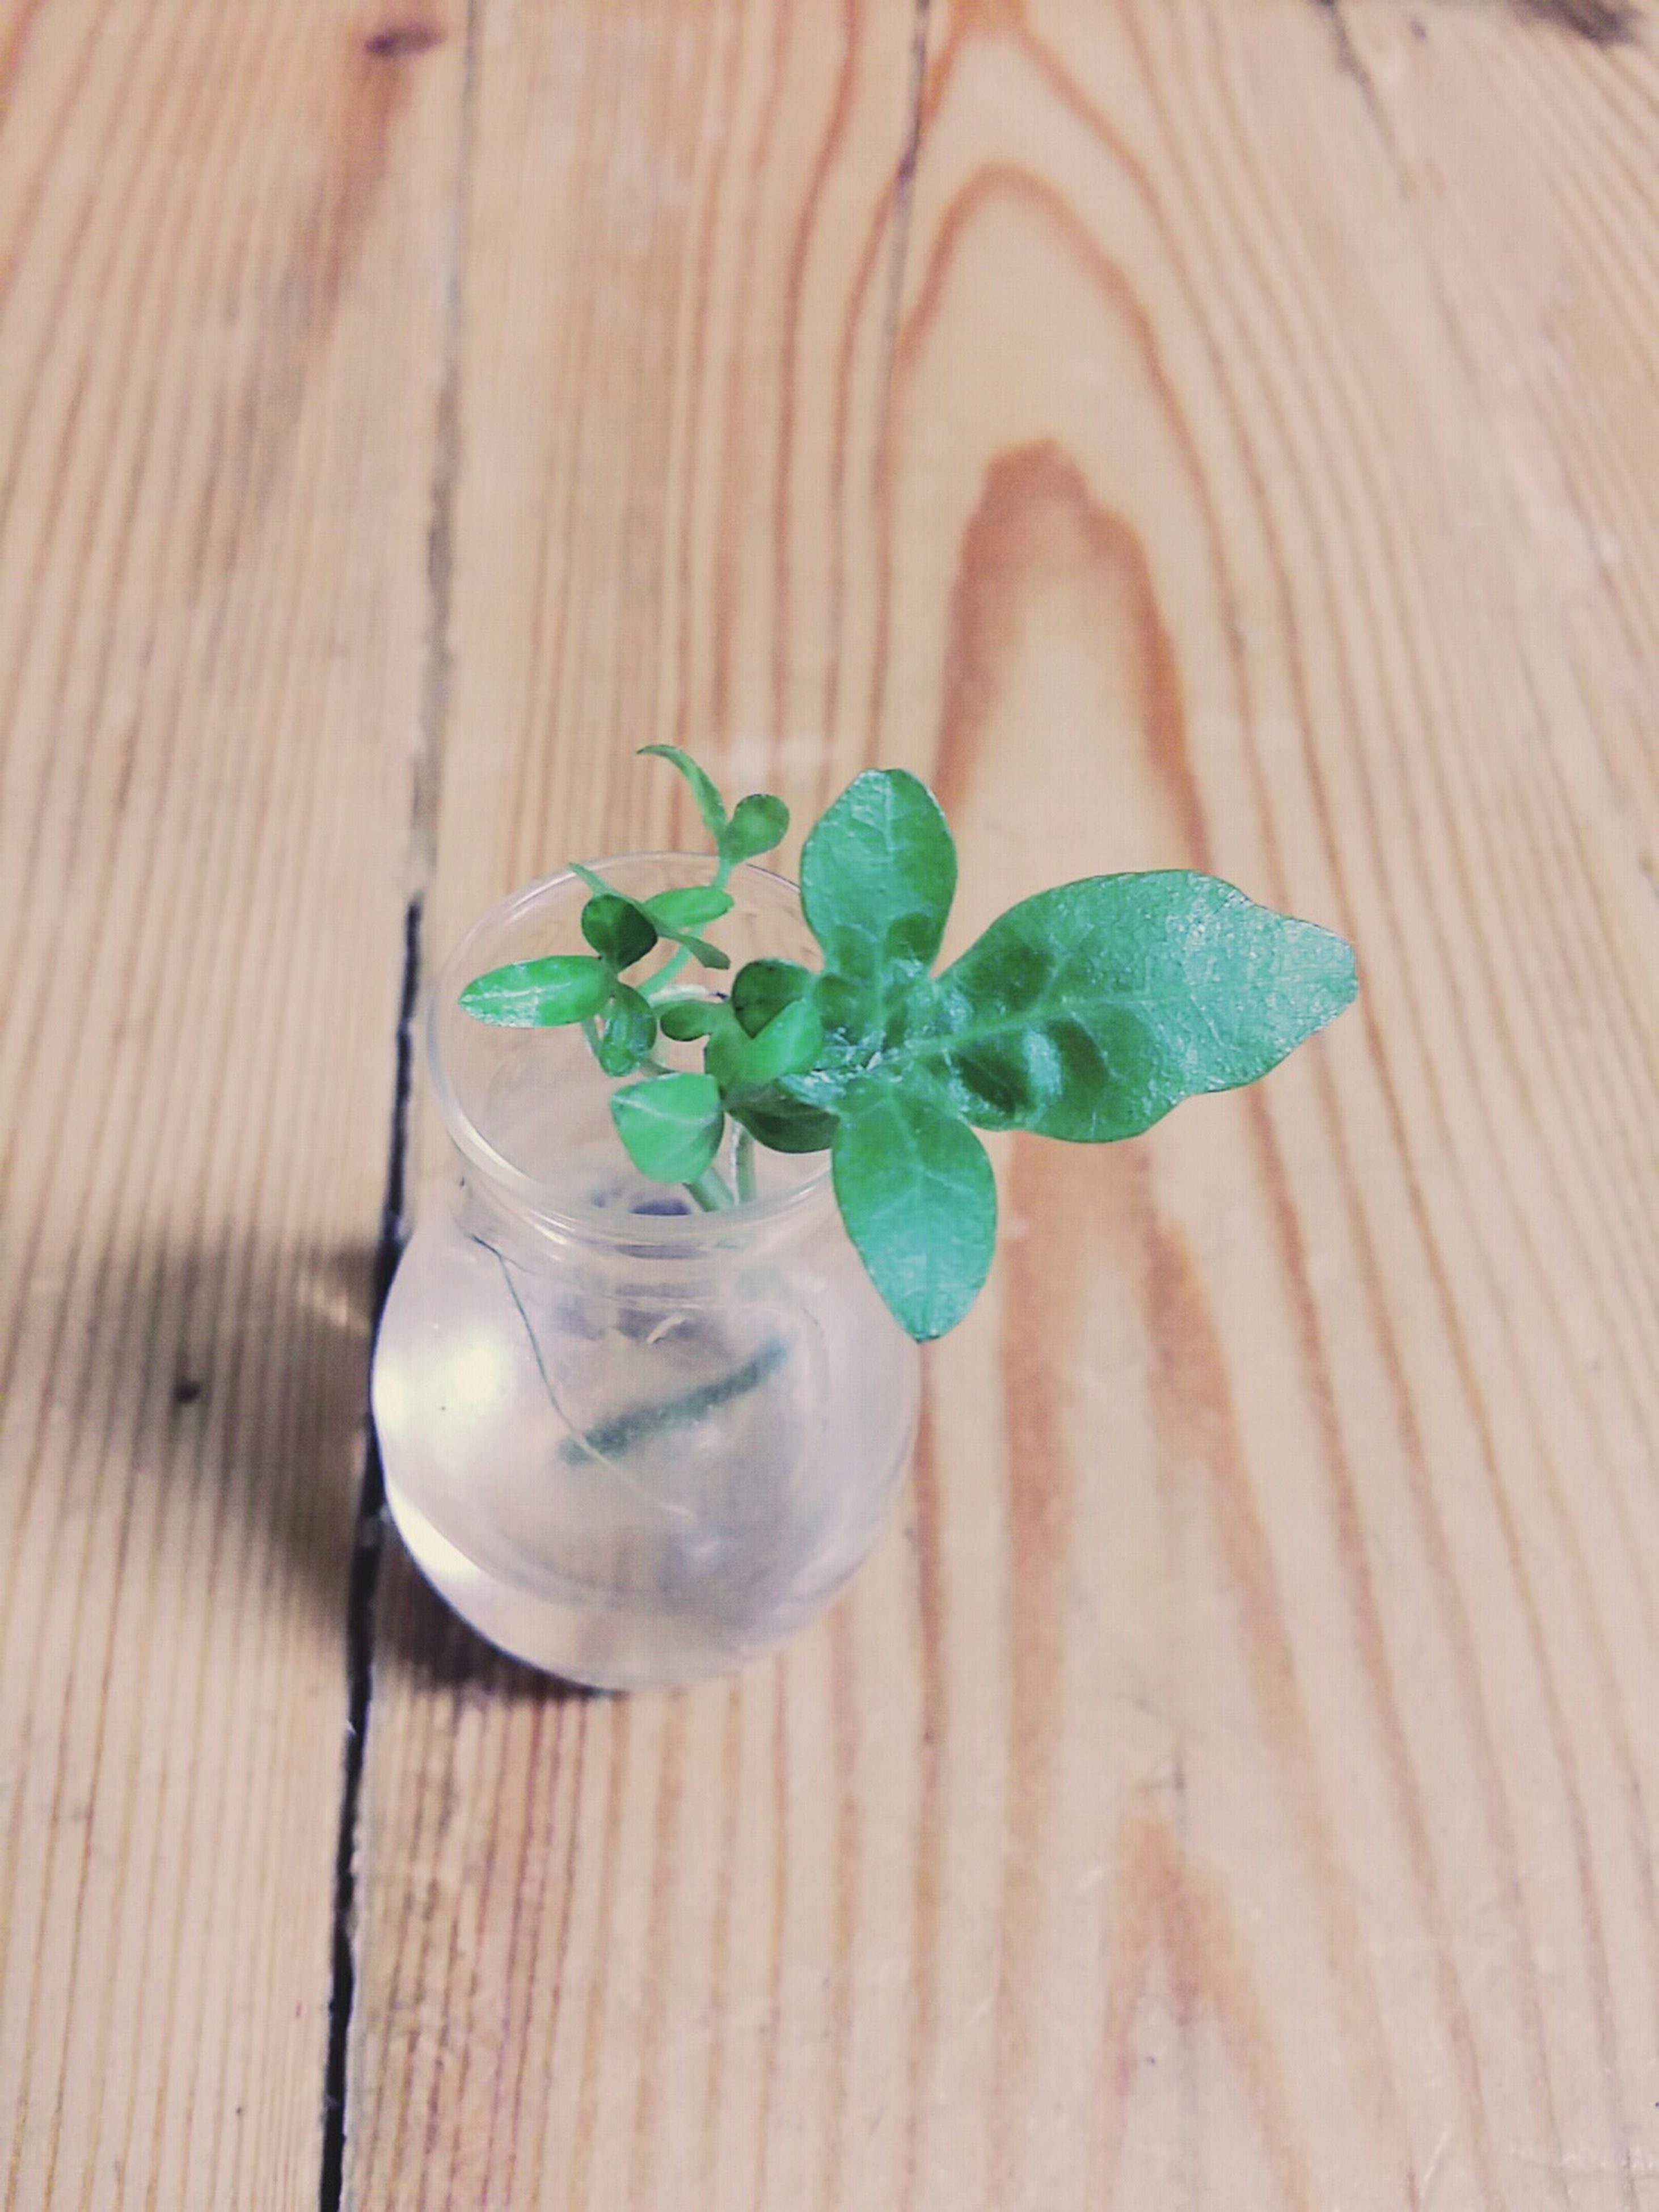 freshness, leaf, close-up, table, green color, growth, fragility, flower, plant, high angle view, wood - material, nature, focus on foreground, beauty in nature, indoors, food and drink, no people, stem, day, water